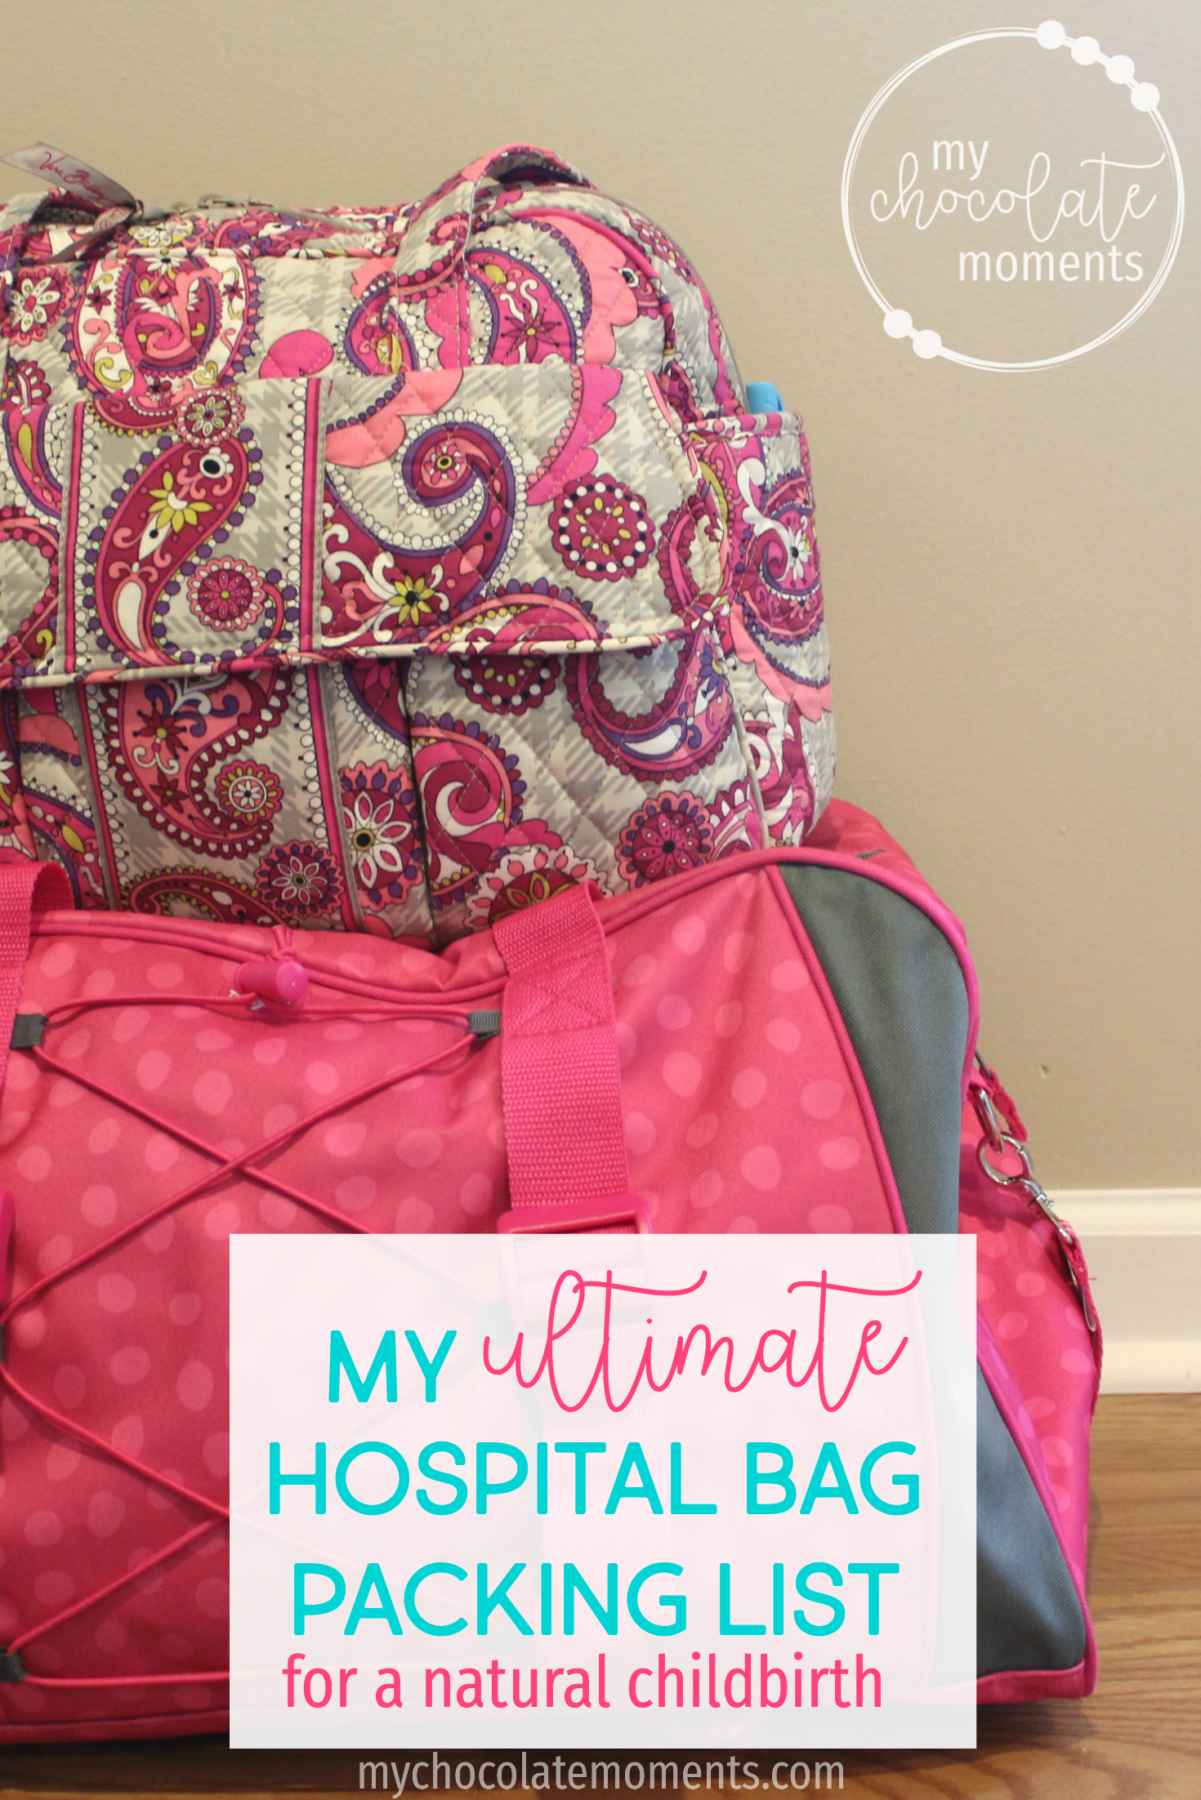 my ultimate hospital bag packing list for a natural hospital birth | natural childbirth | hospital birth | packing list | pregnancy | babies